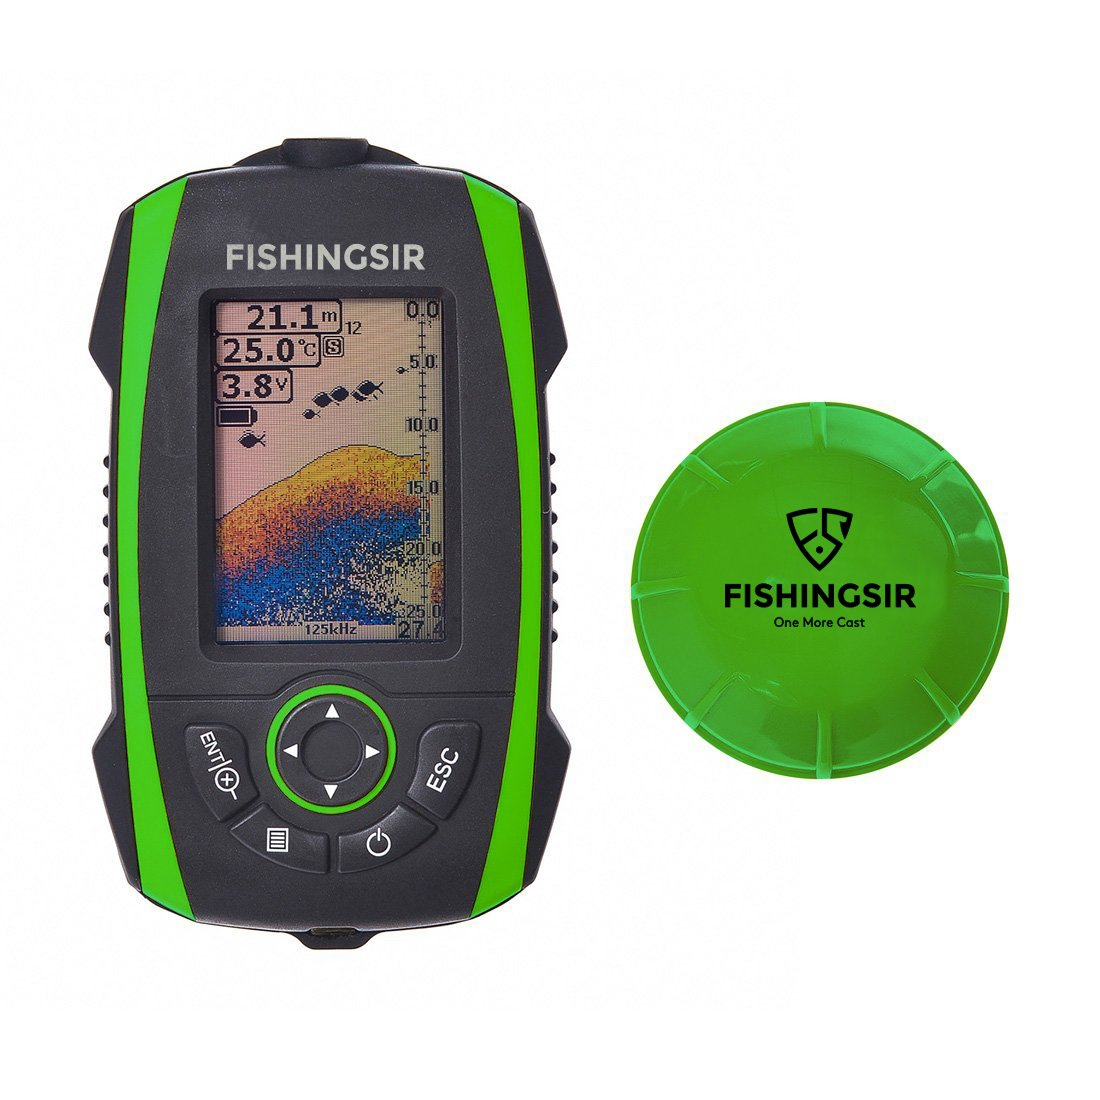 FISHINGSIR Wireless Portable Fish Finder Depth Finder Fishfinder with Sonar Sensor Transducer and 100M LCD colors Display